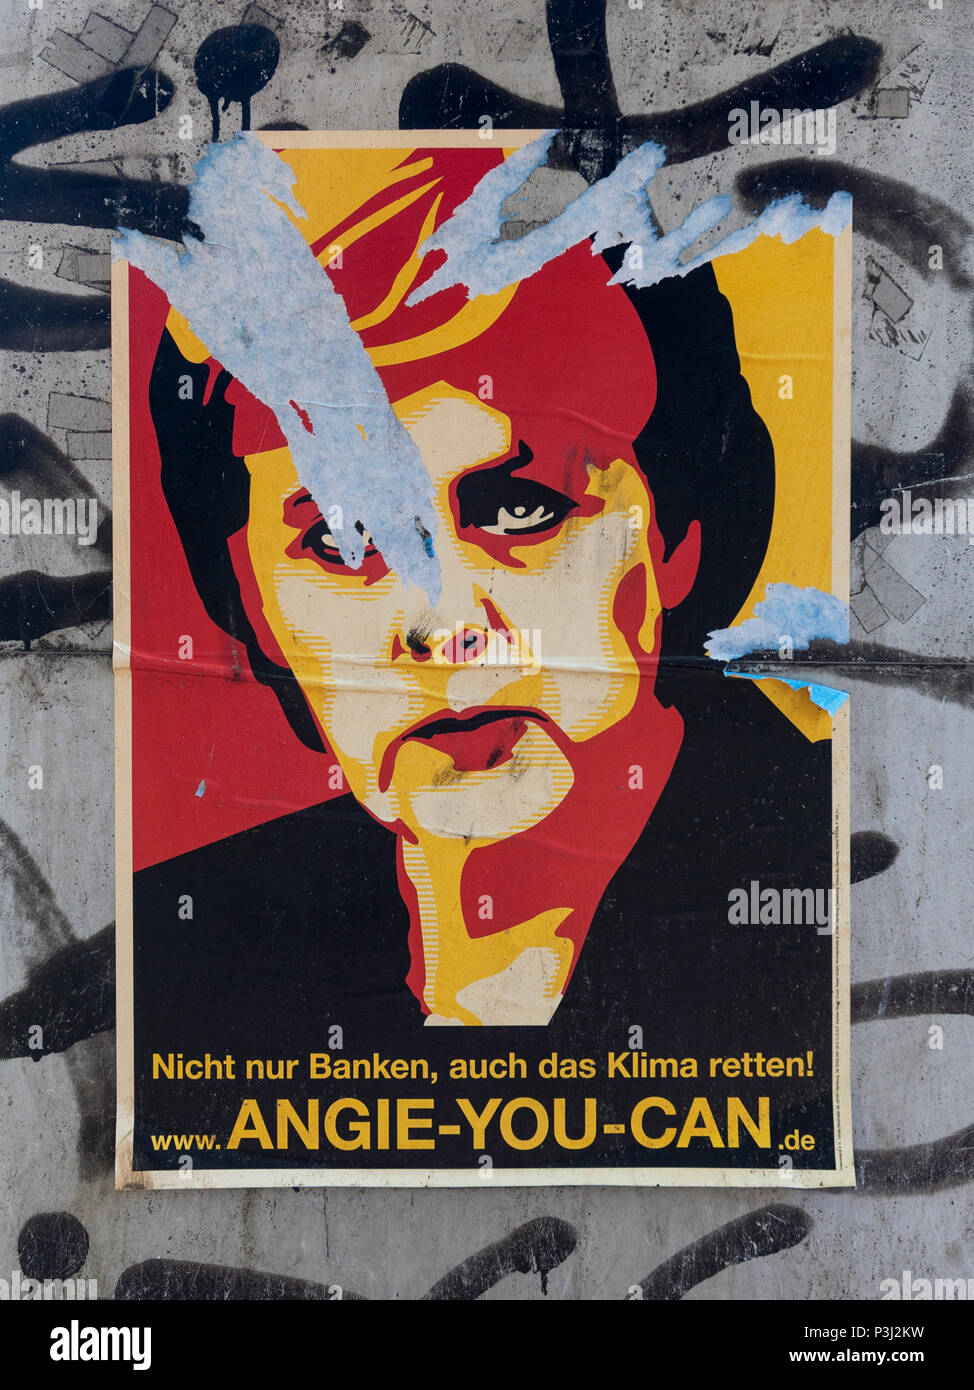 Berlin. Germany. Graphic arts poster portrait of German Chancellor Angela Merkel with the slogan 'Angie You Can'. - Stock Image